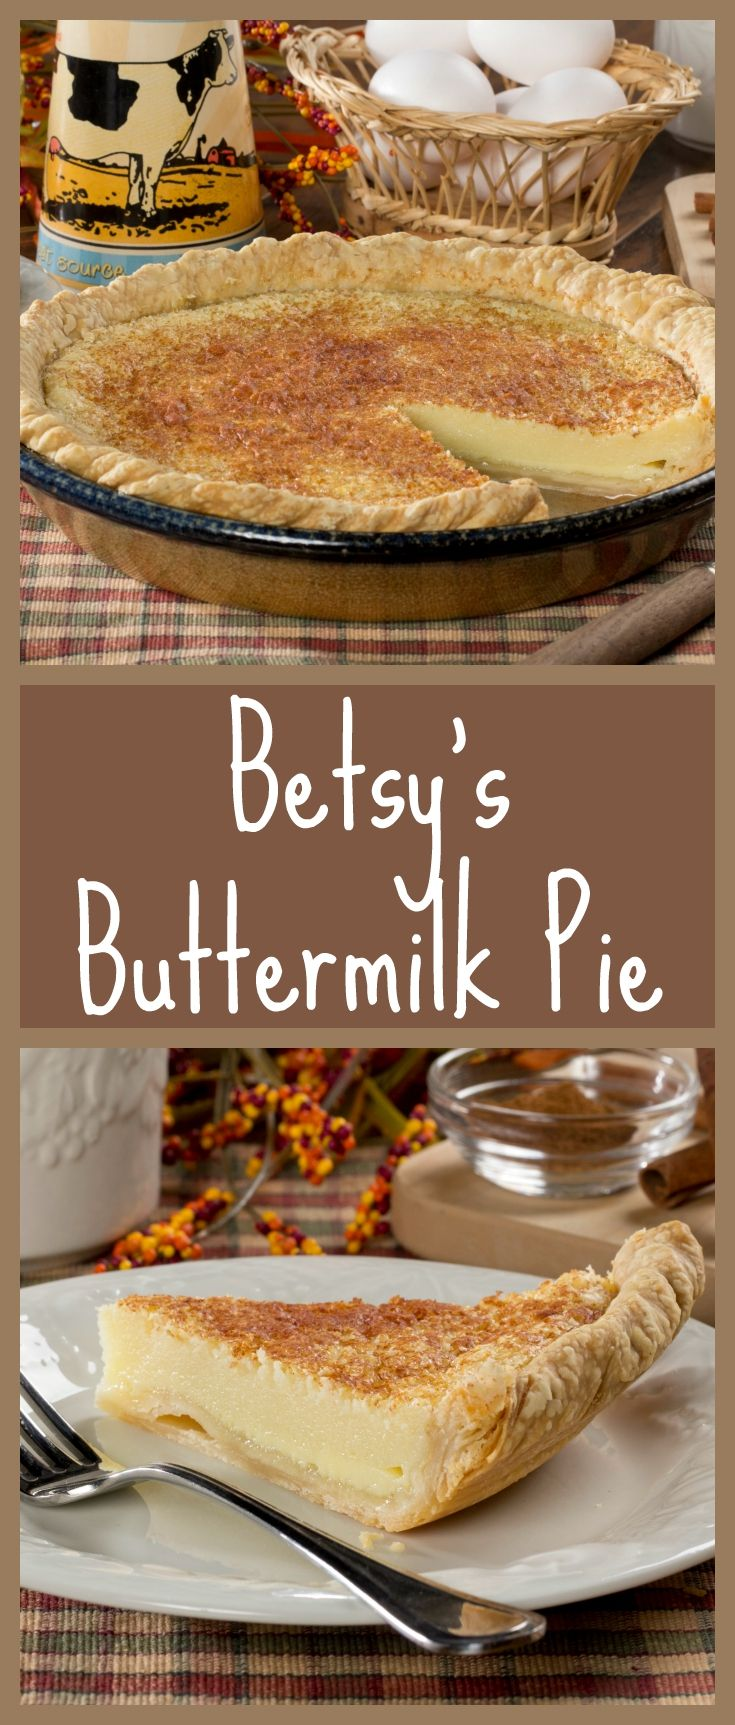 Betsy S Buttermilk Pie Recipe Buttermilk Pie Dessert Recipes Desserts